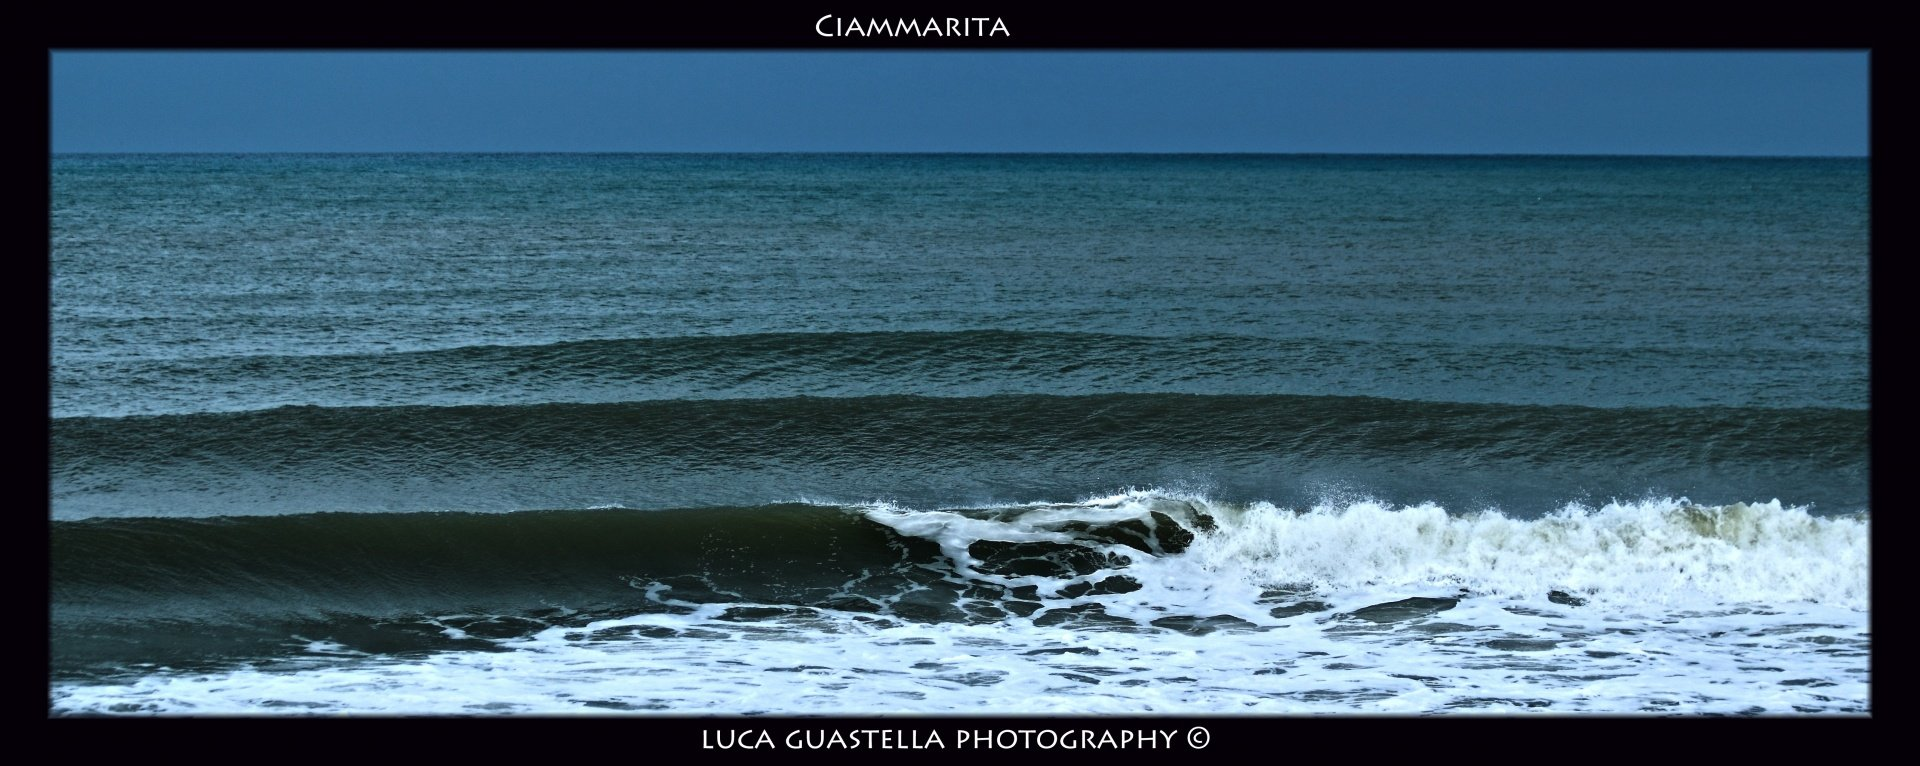 lucaguastella's photo of Ciammarita